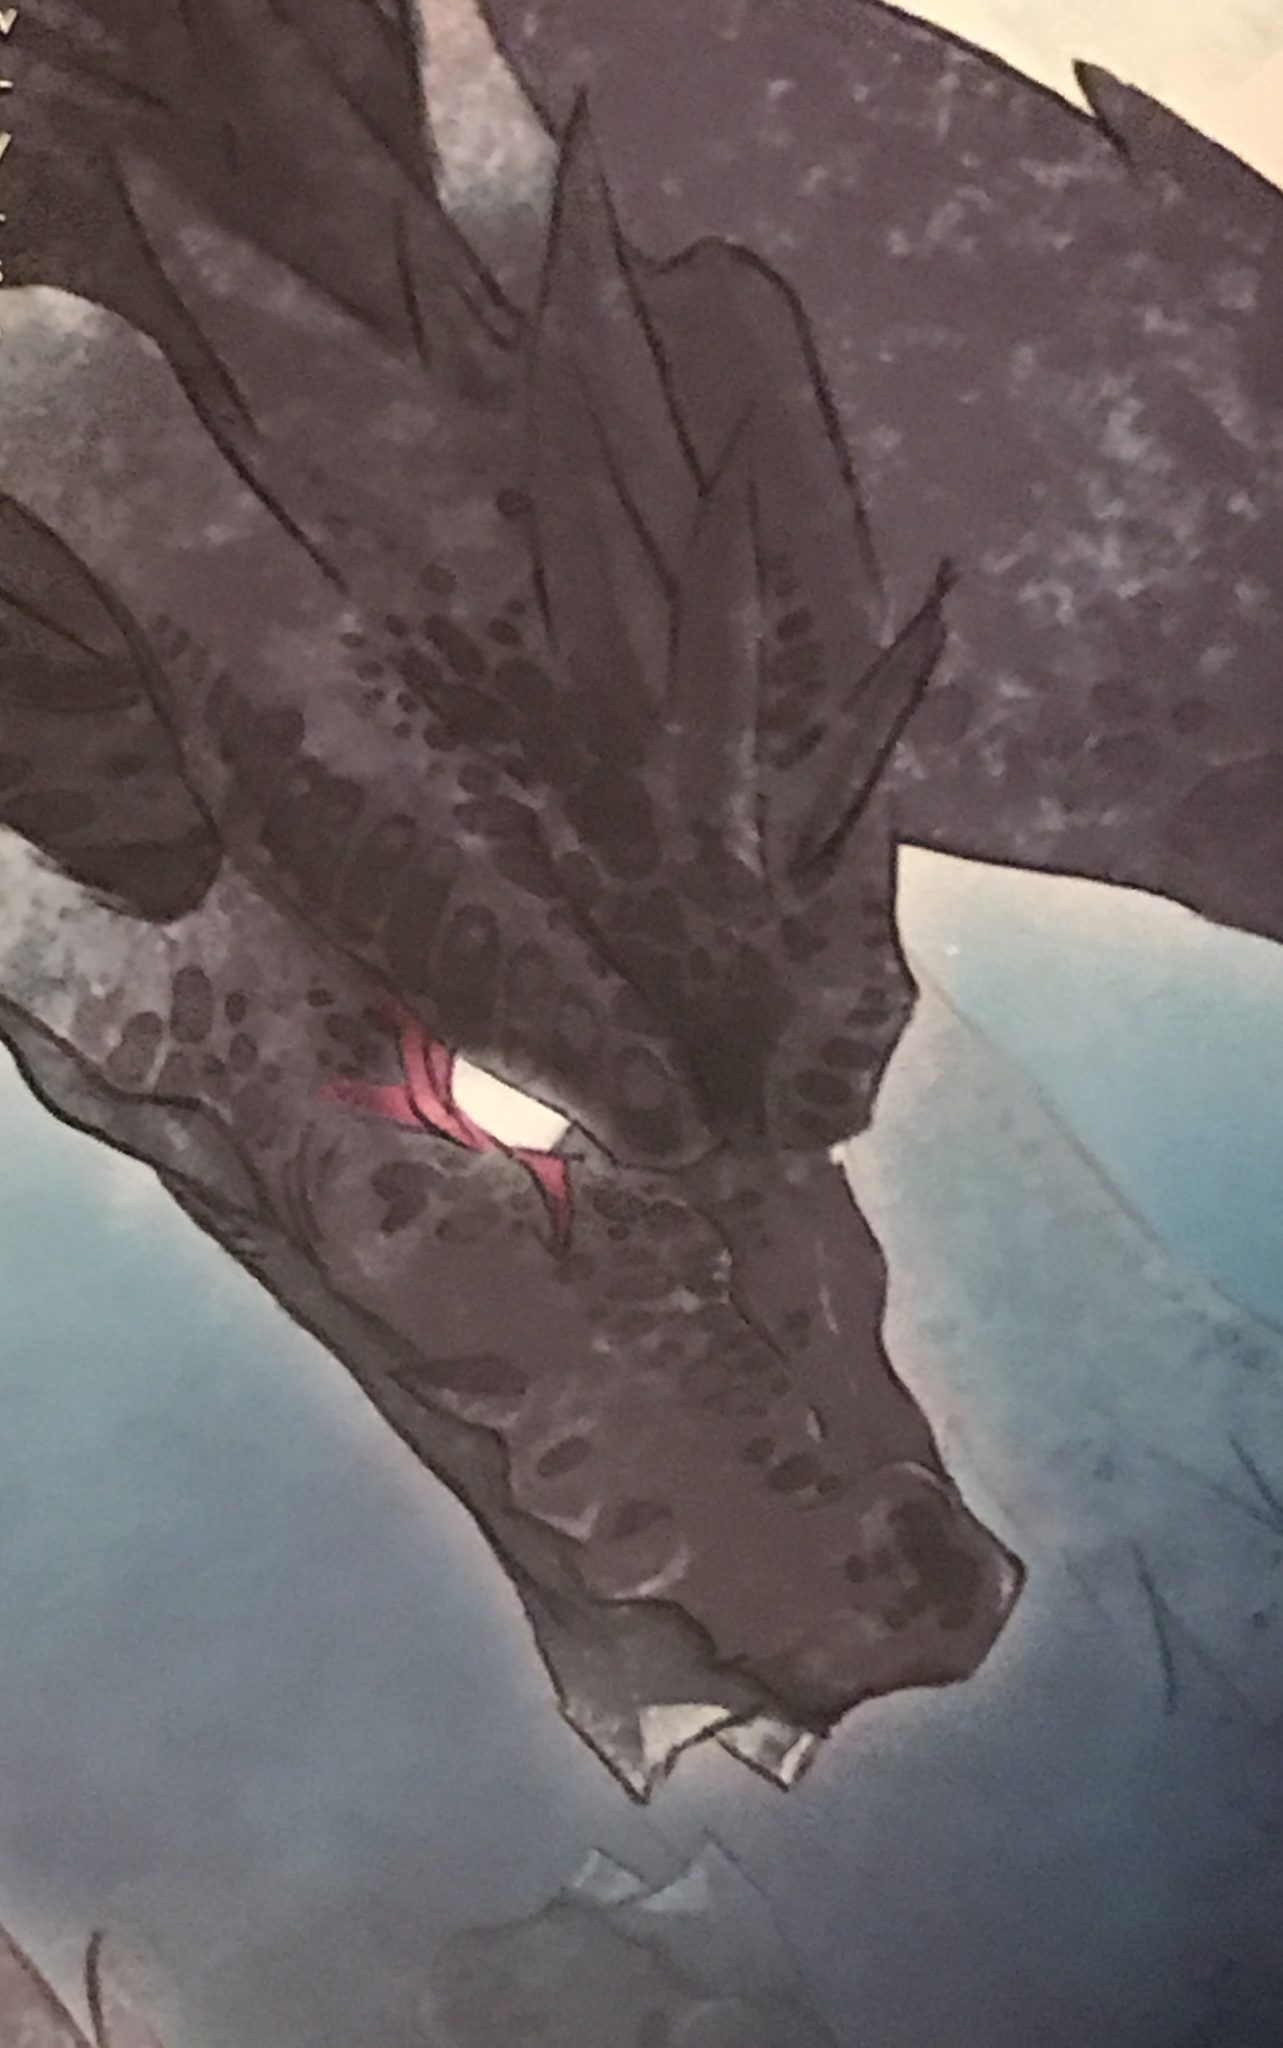 That Time I Got Reincarnated as a Slime Vol. 1 review